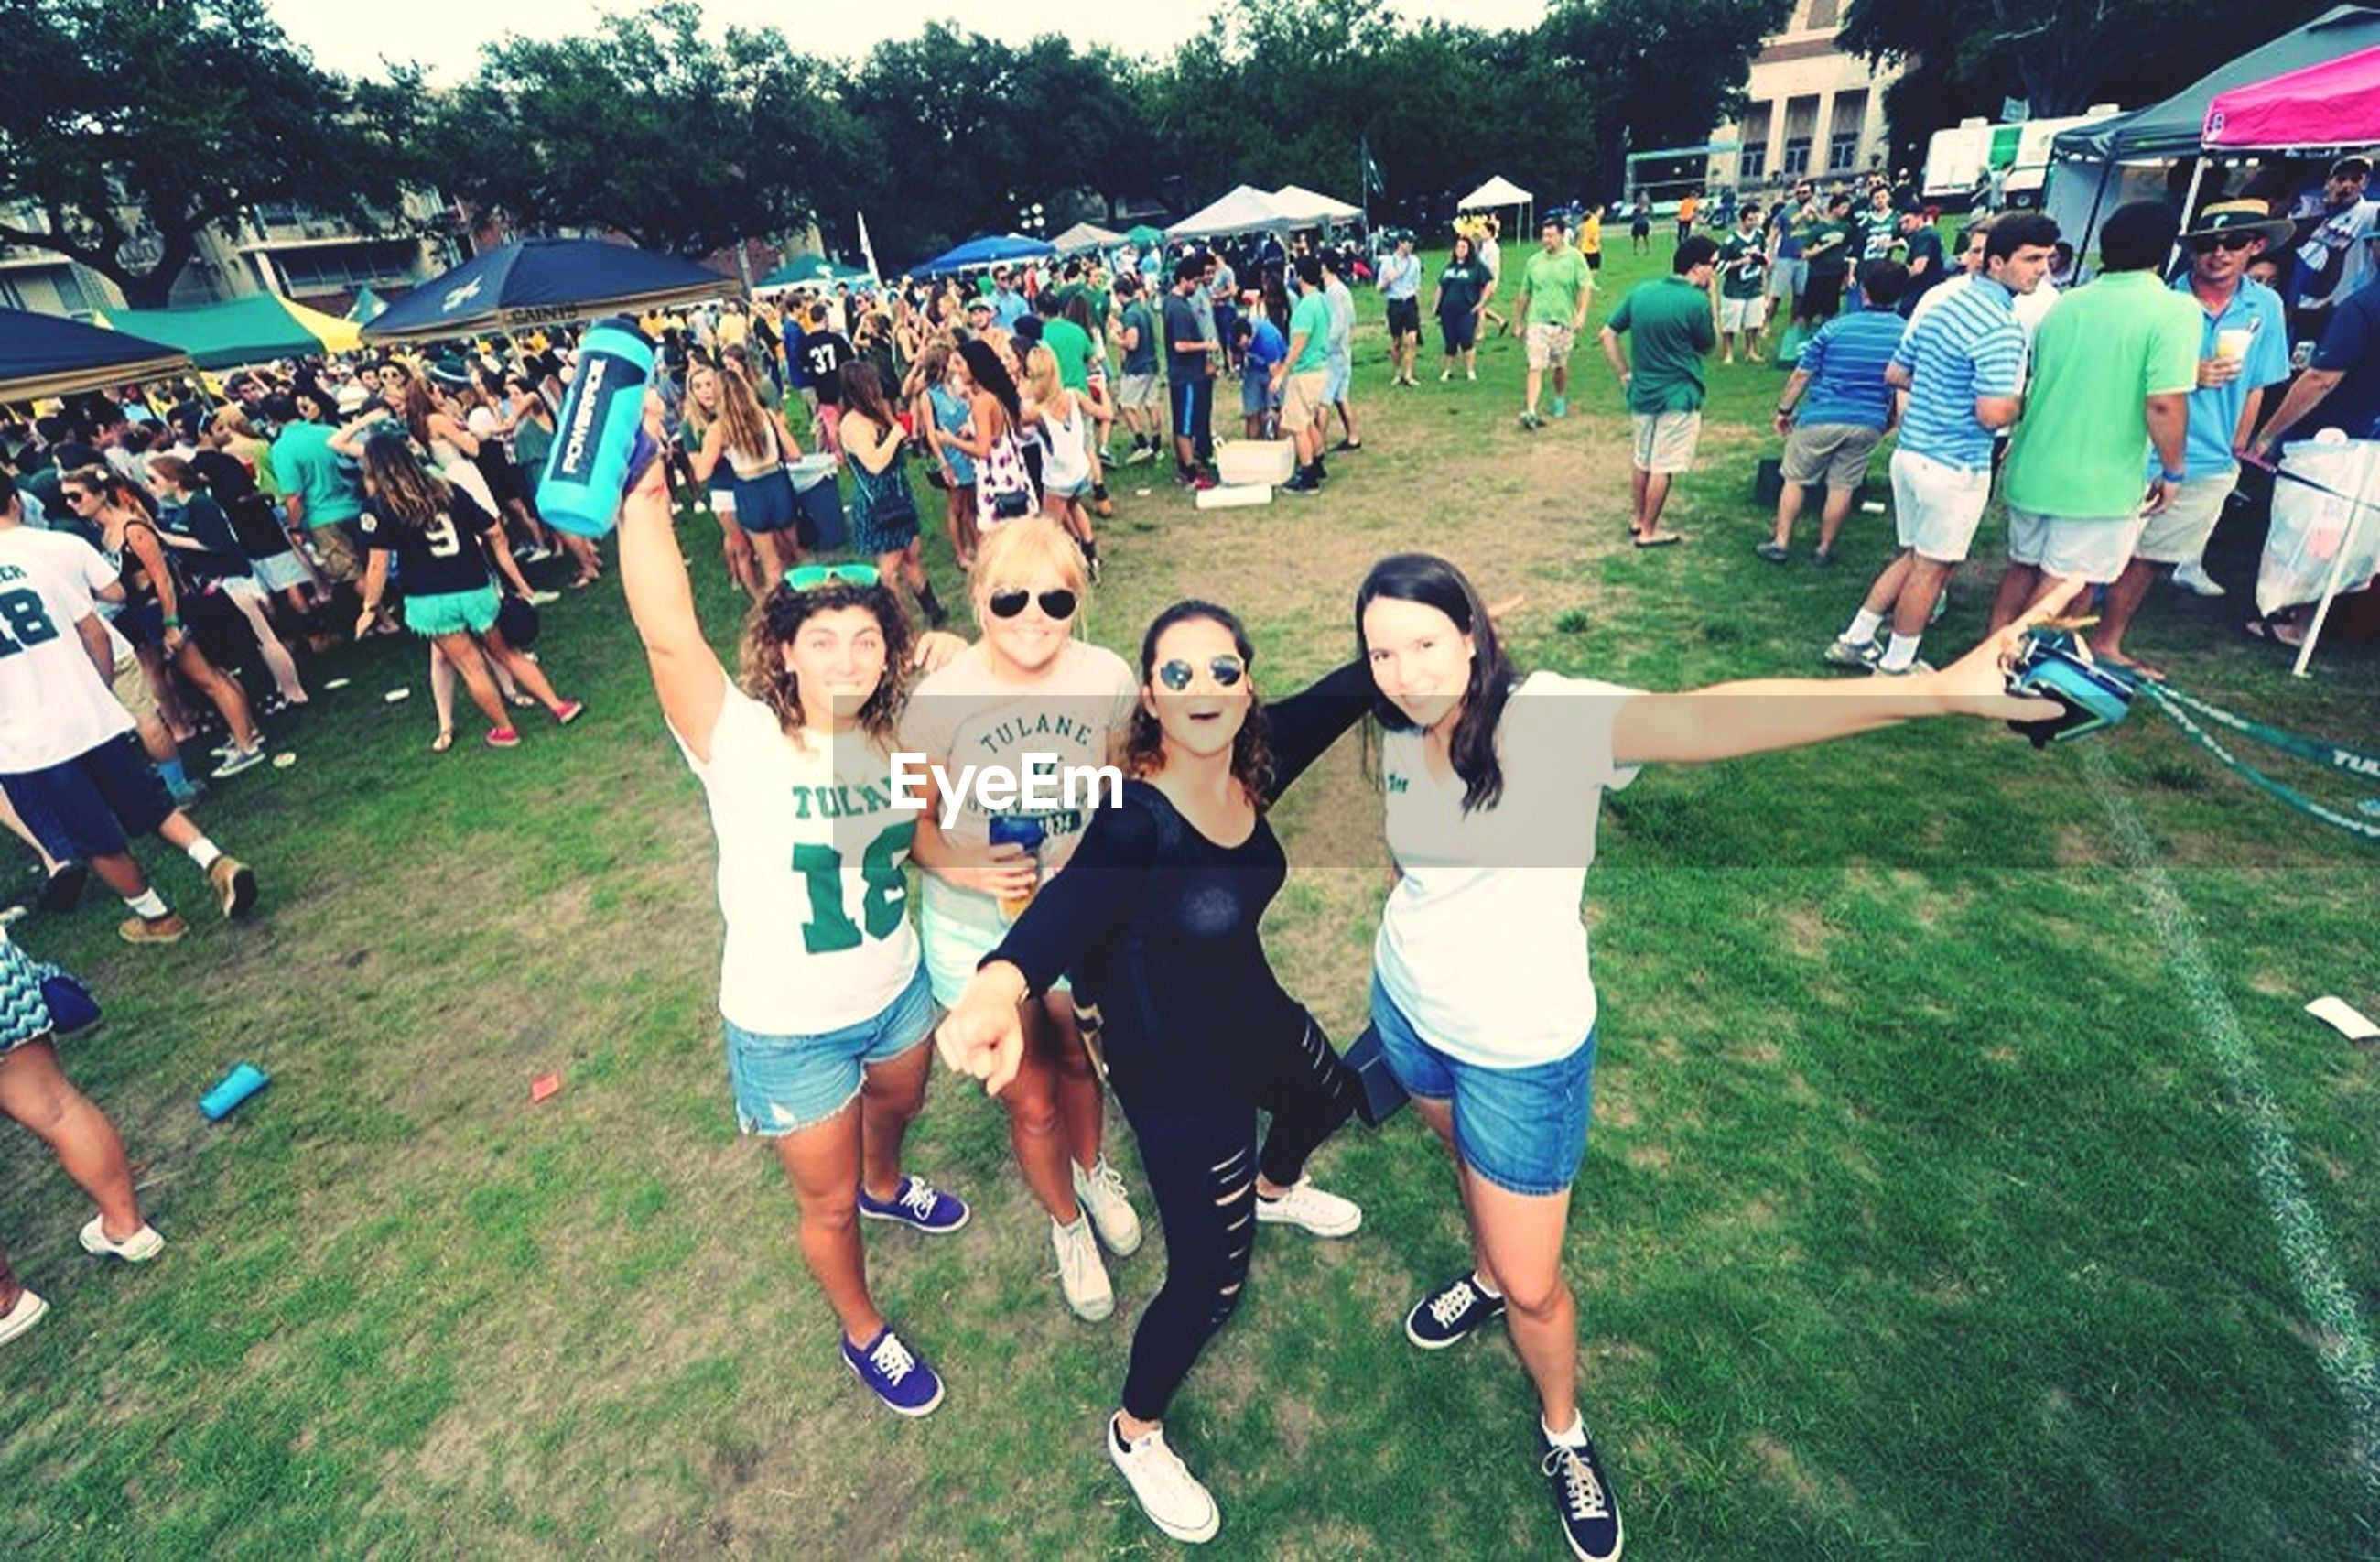 large group of people, lifestyles, leisure activity, person, men, casual clothing, enjoyment, togetherness, mixed age range, fun, happiness, standing, crowd, vacations, day, grass, full length, high angle view, outdoors